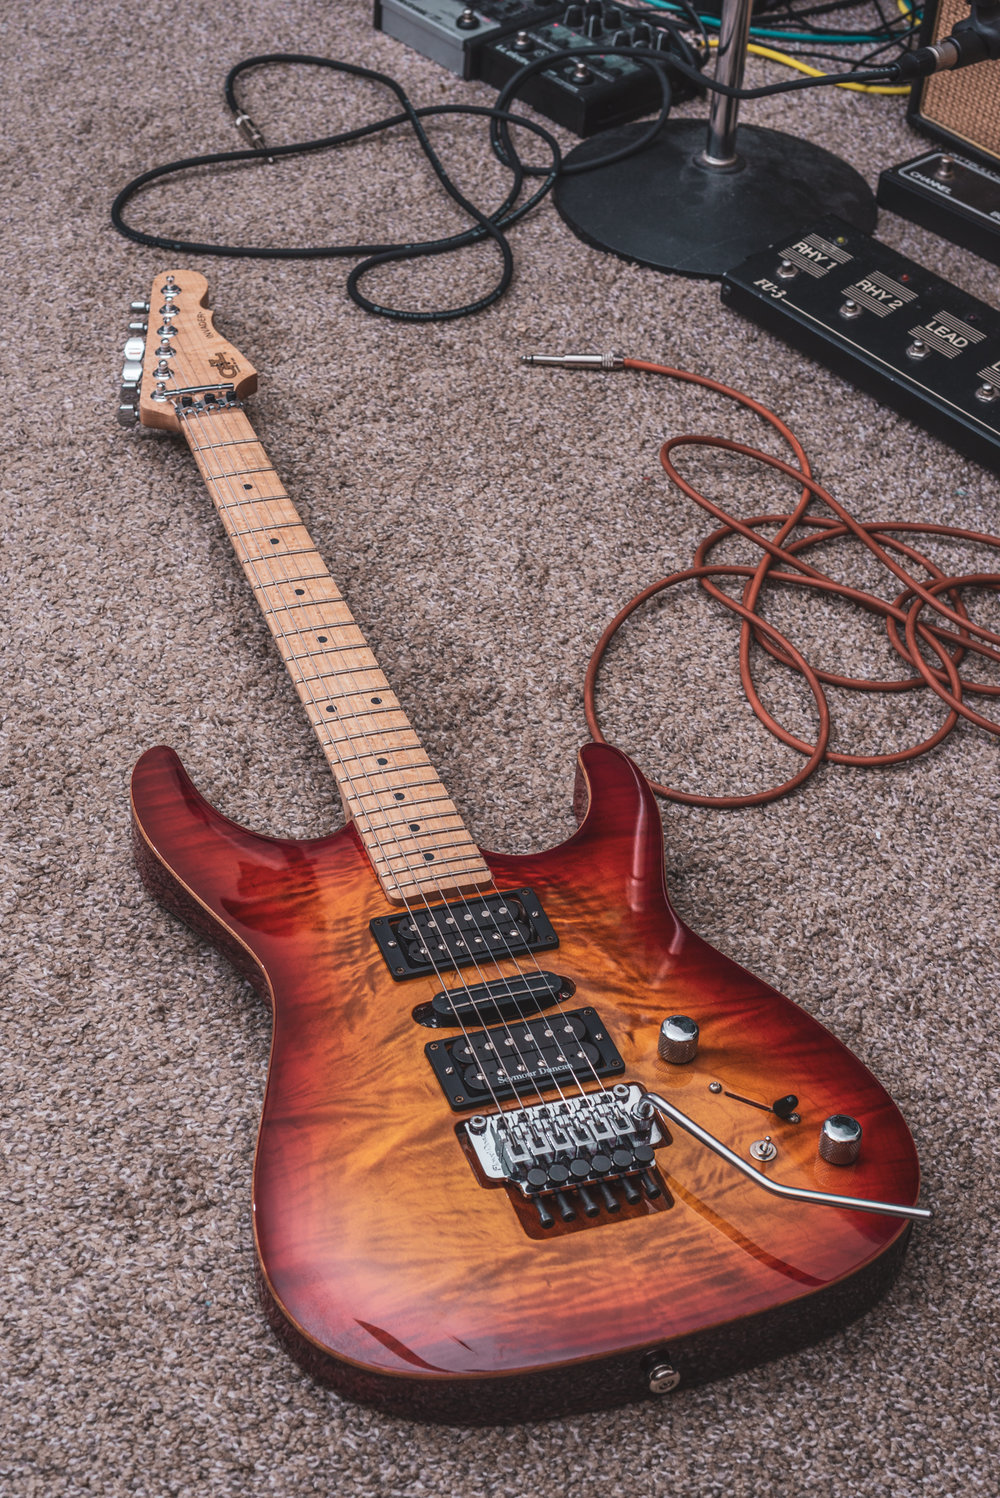 A wonderfully figured maple top with excellent color and depth.